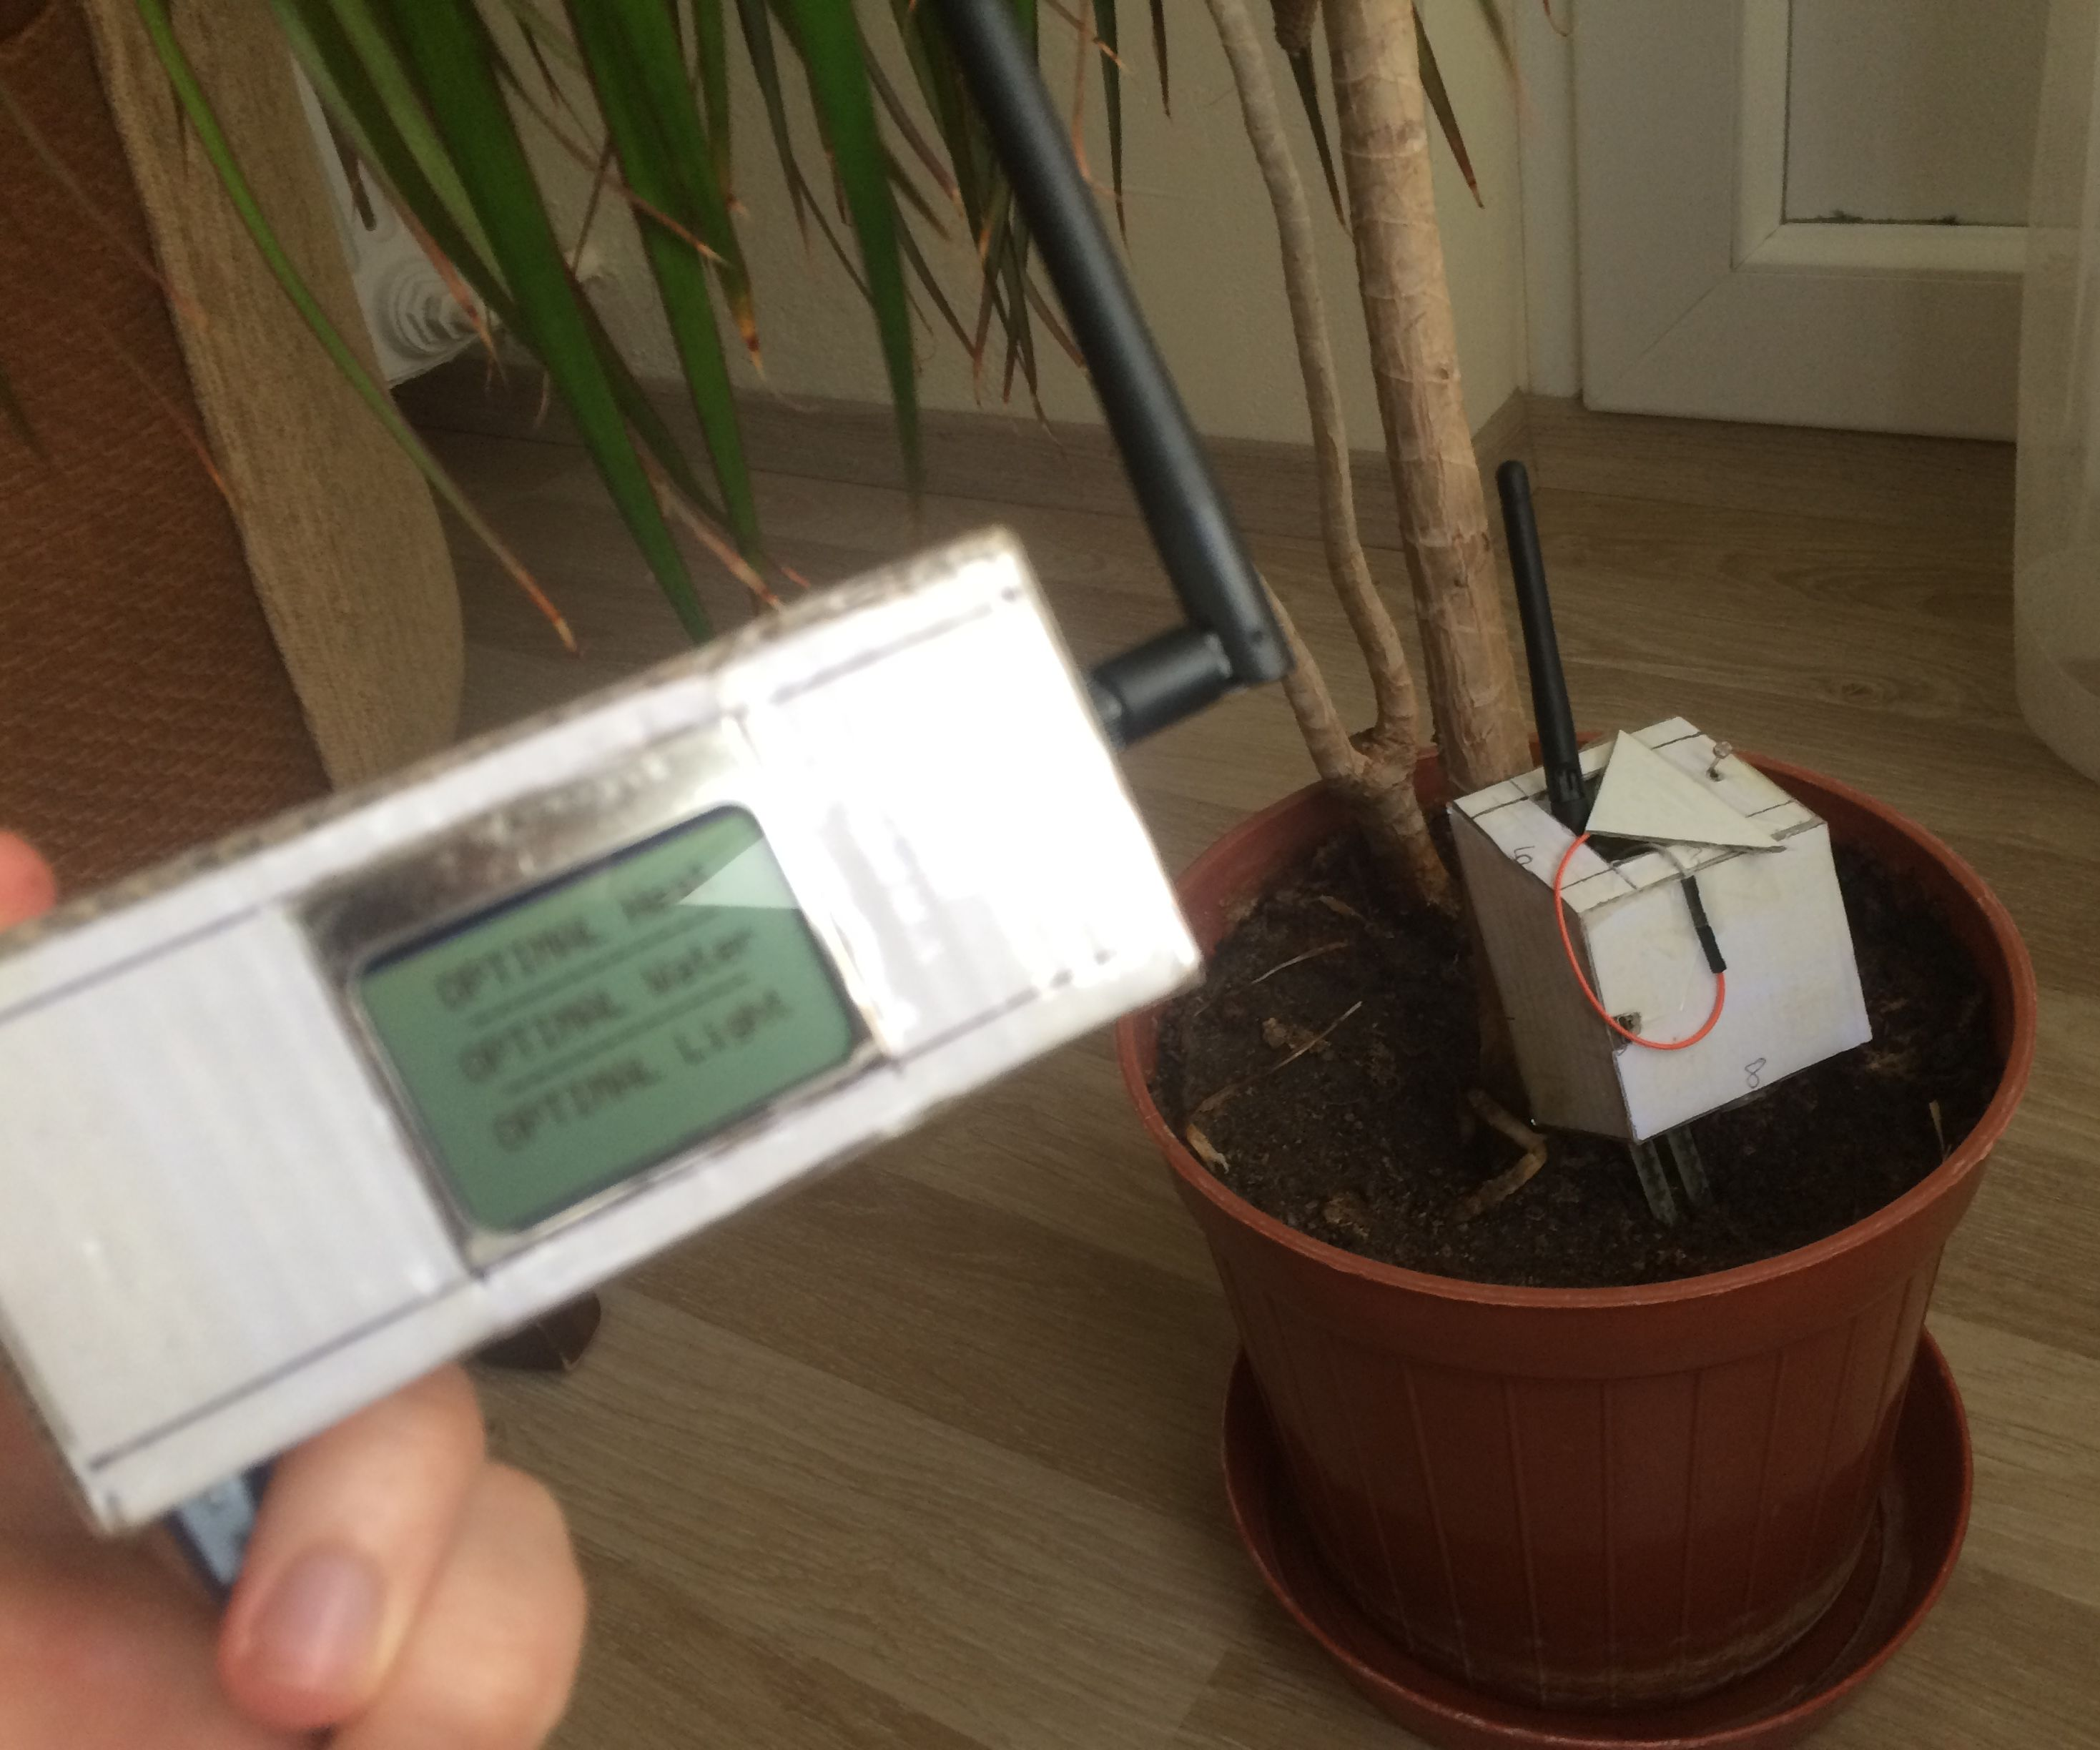 Nrf24l01 With 5110 and 3 Sensor ''Plantation Controller'' With Arduino